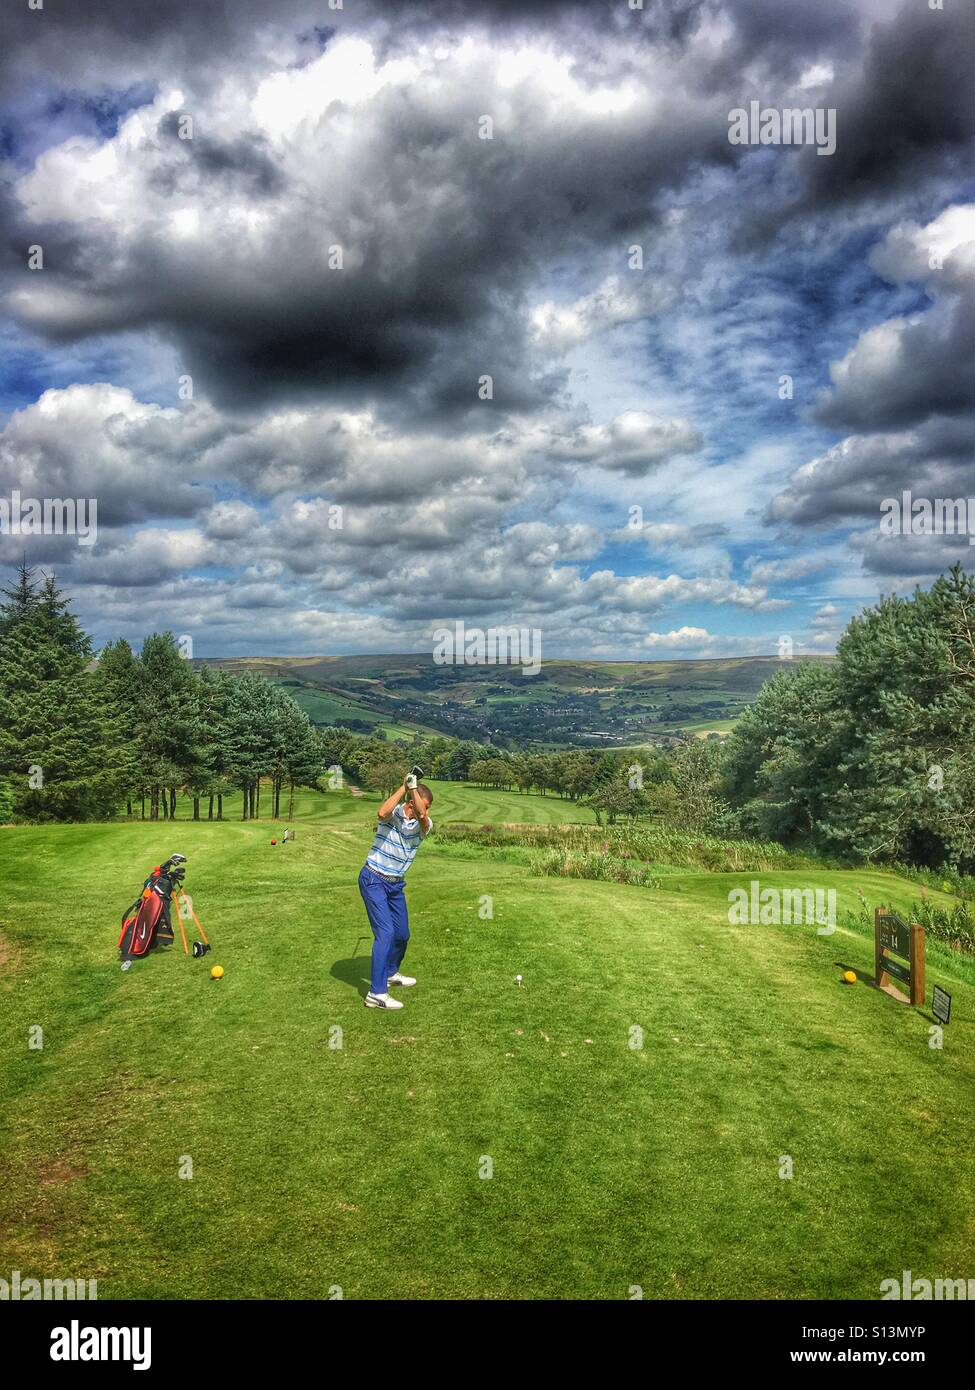 Top of the golf swing - Stock Image